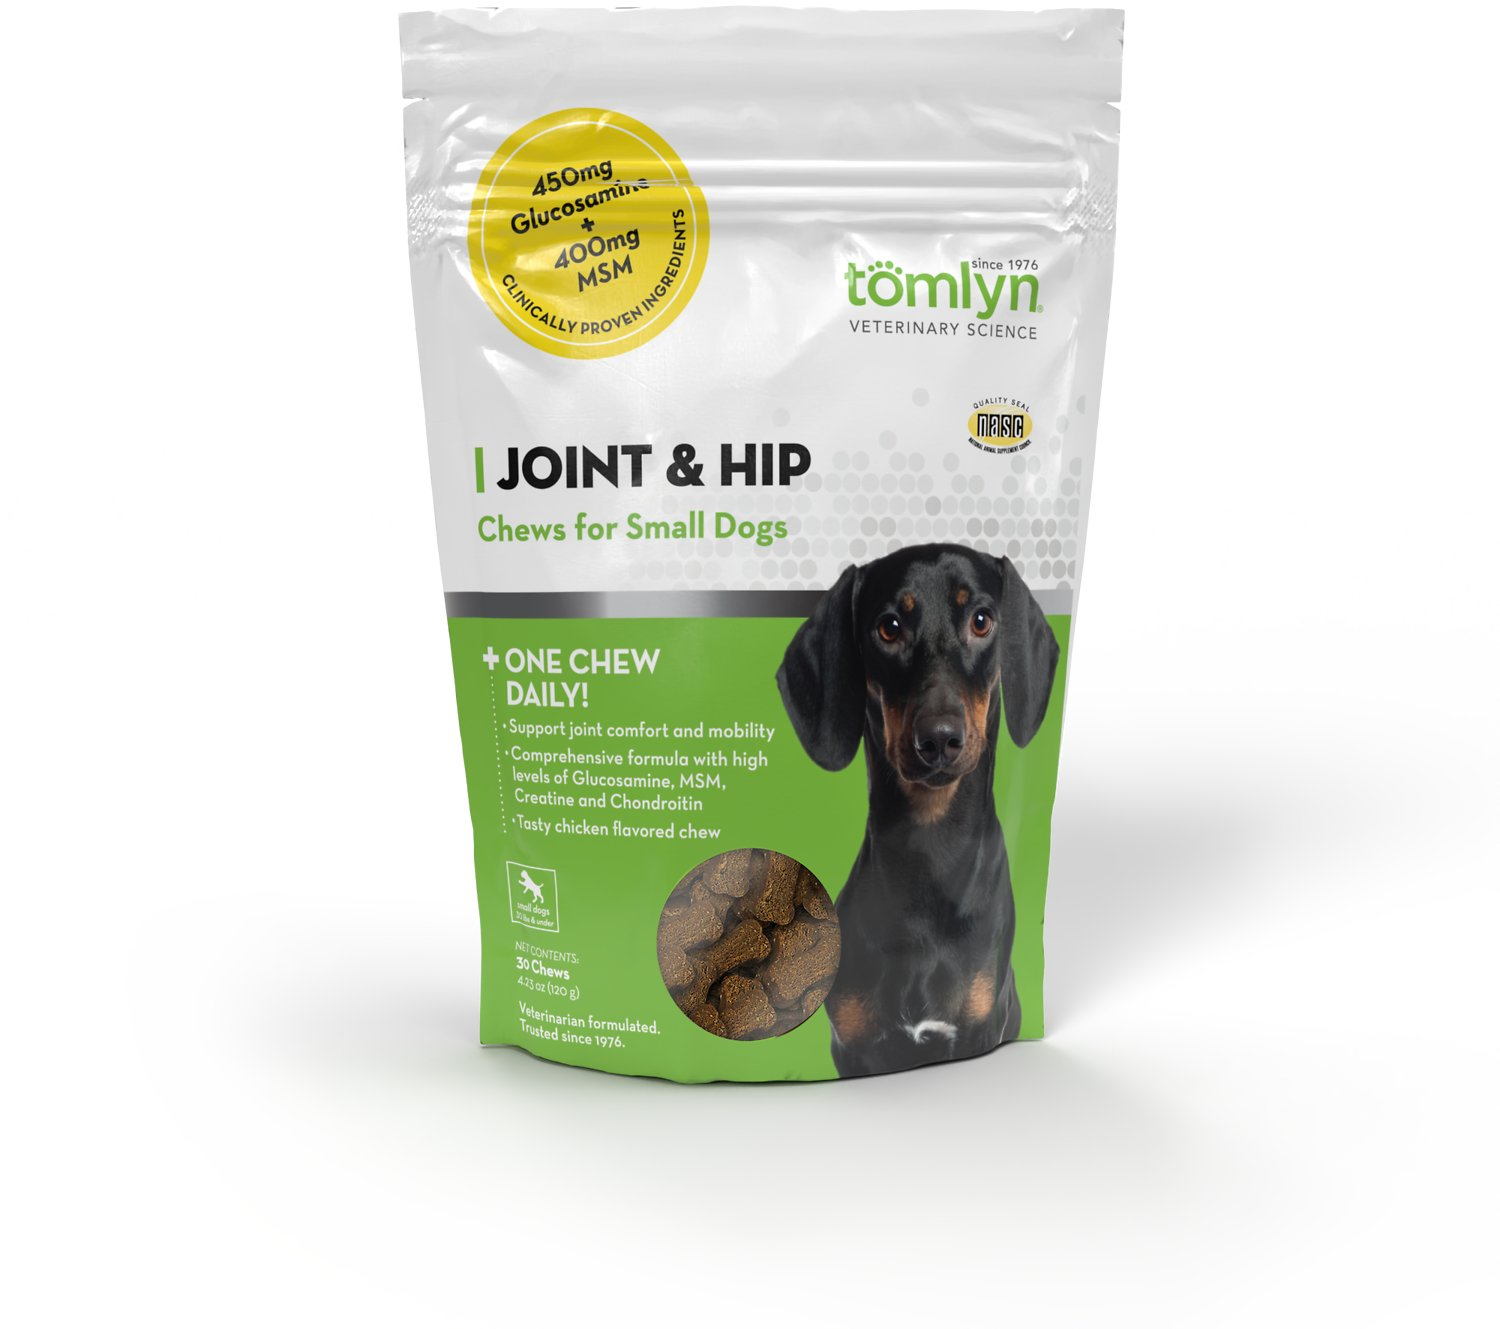 Tomlyn Joint & Hip Chews with MSM and Glucosamine for Small Dogs, 30 count